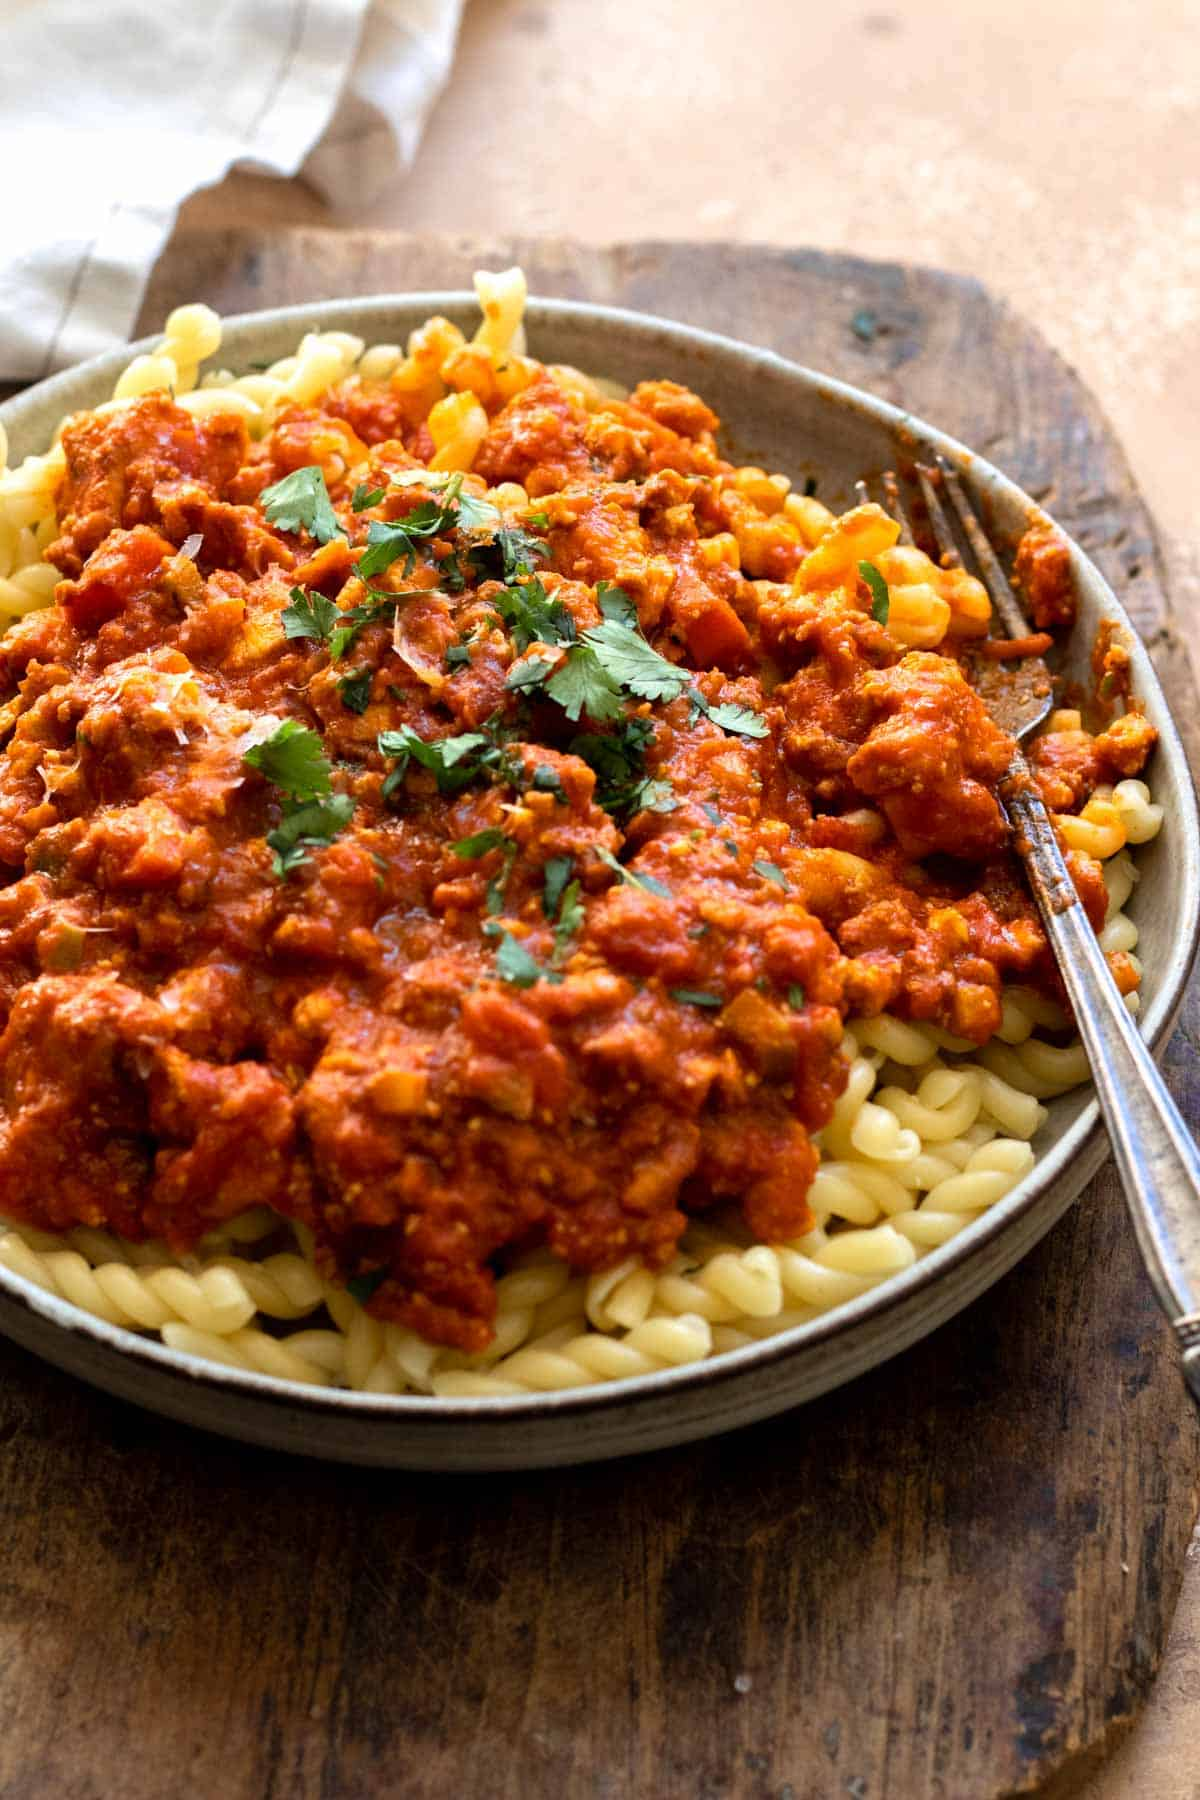 Bolognese served over pasta in a gray shallow bowl.